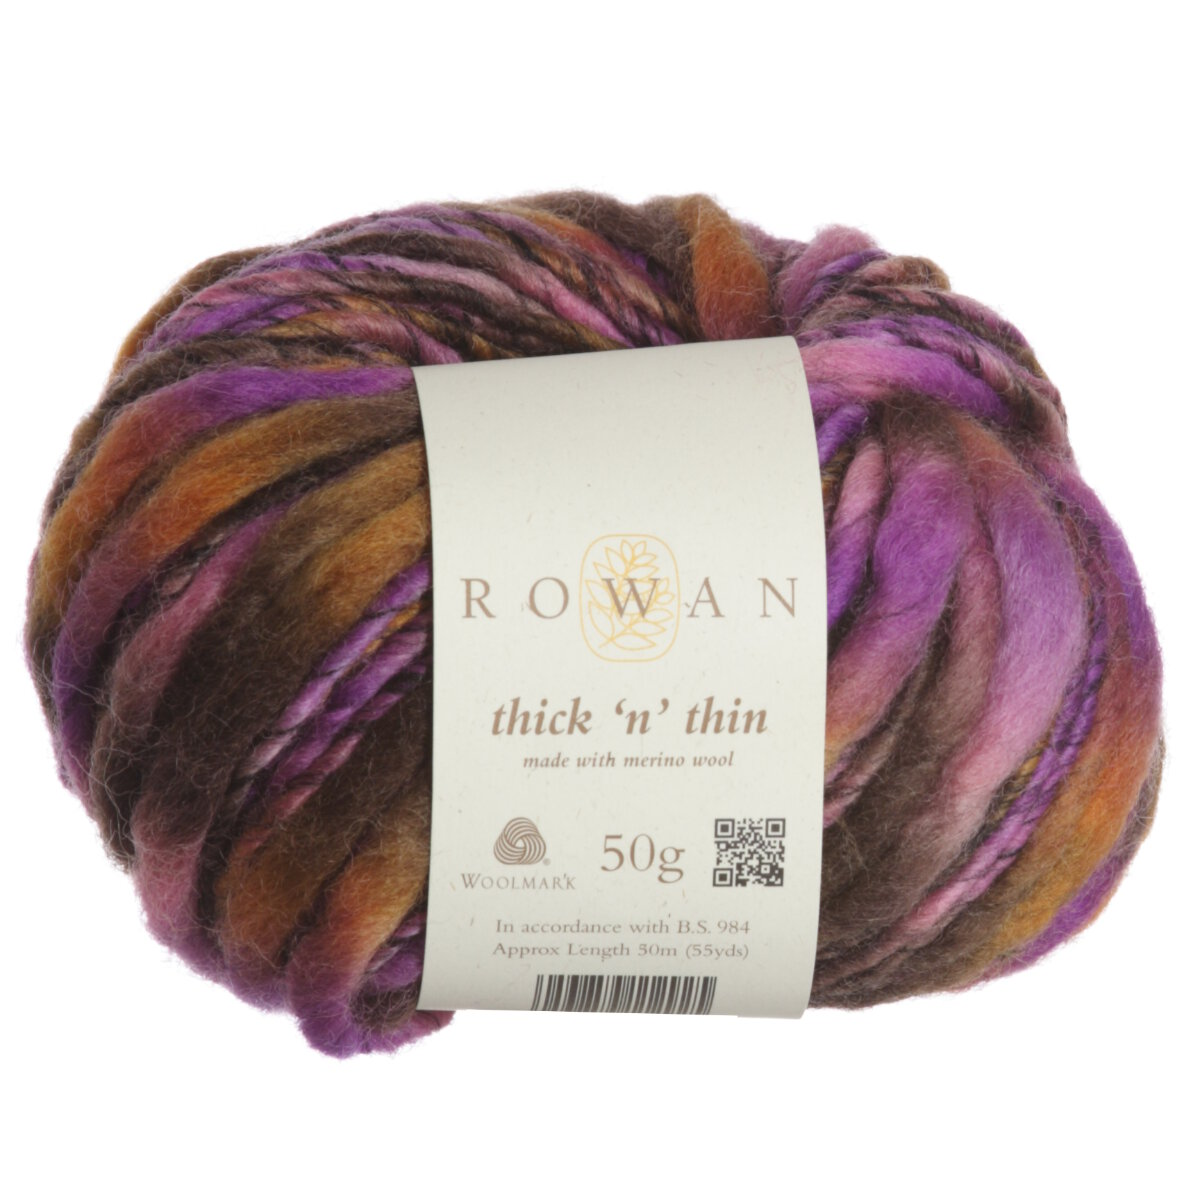 Knitting Patterns For Thin Yarn : Rowan Thick n Thin Yarn - 979 Fossil at Jimmy Beans Wool